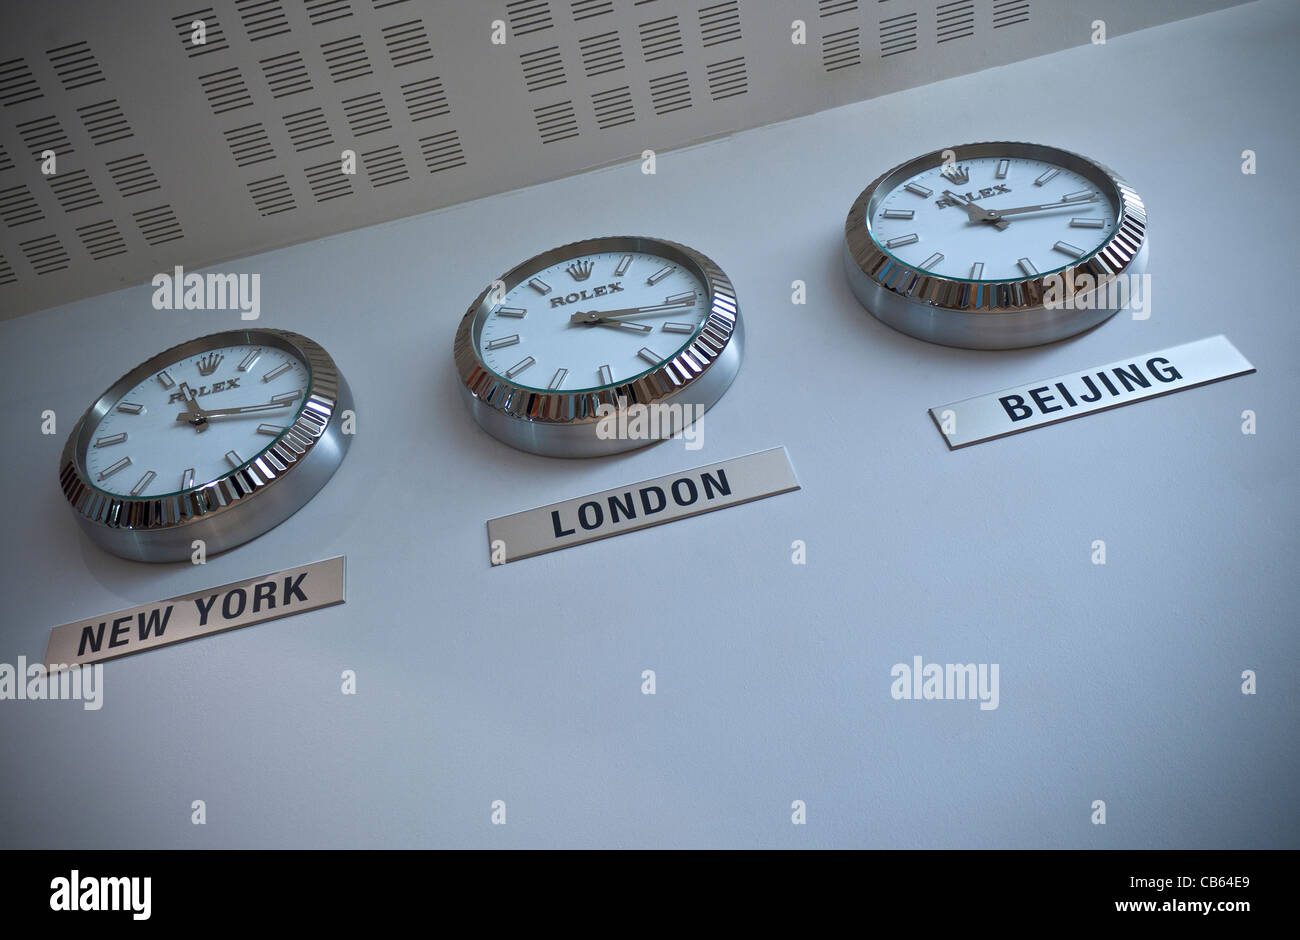 Three Rolex clocks on a white wall showing time zones in New York London and Beijing - Stock Image